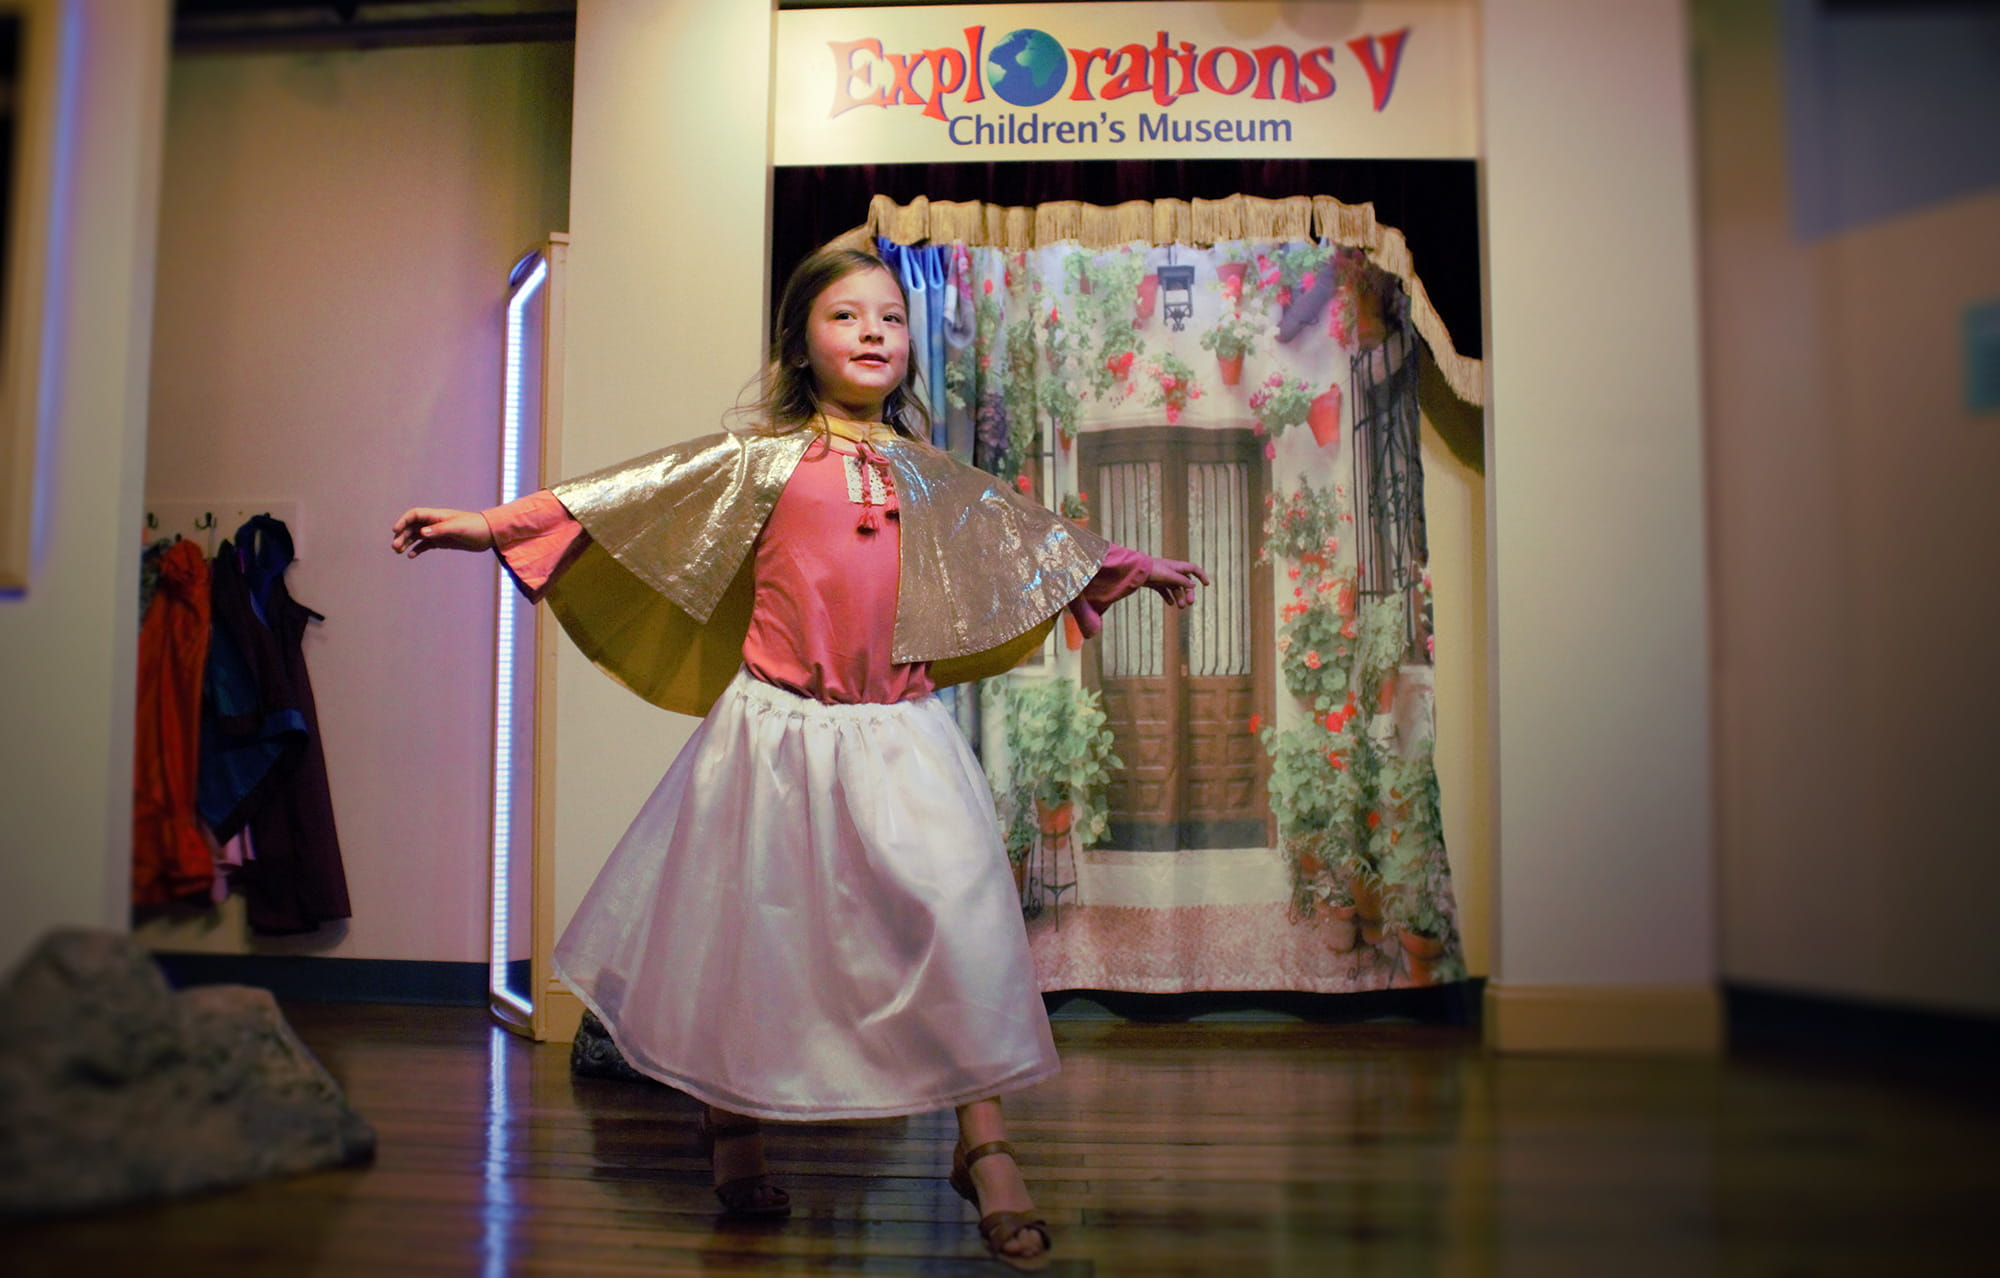 Child playing in costume and on stage at Explorations V Children's Museum in Lakeland, FL